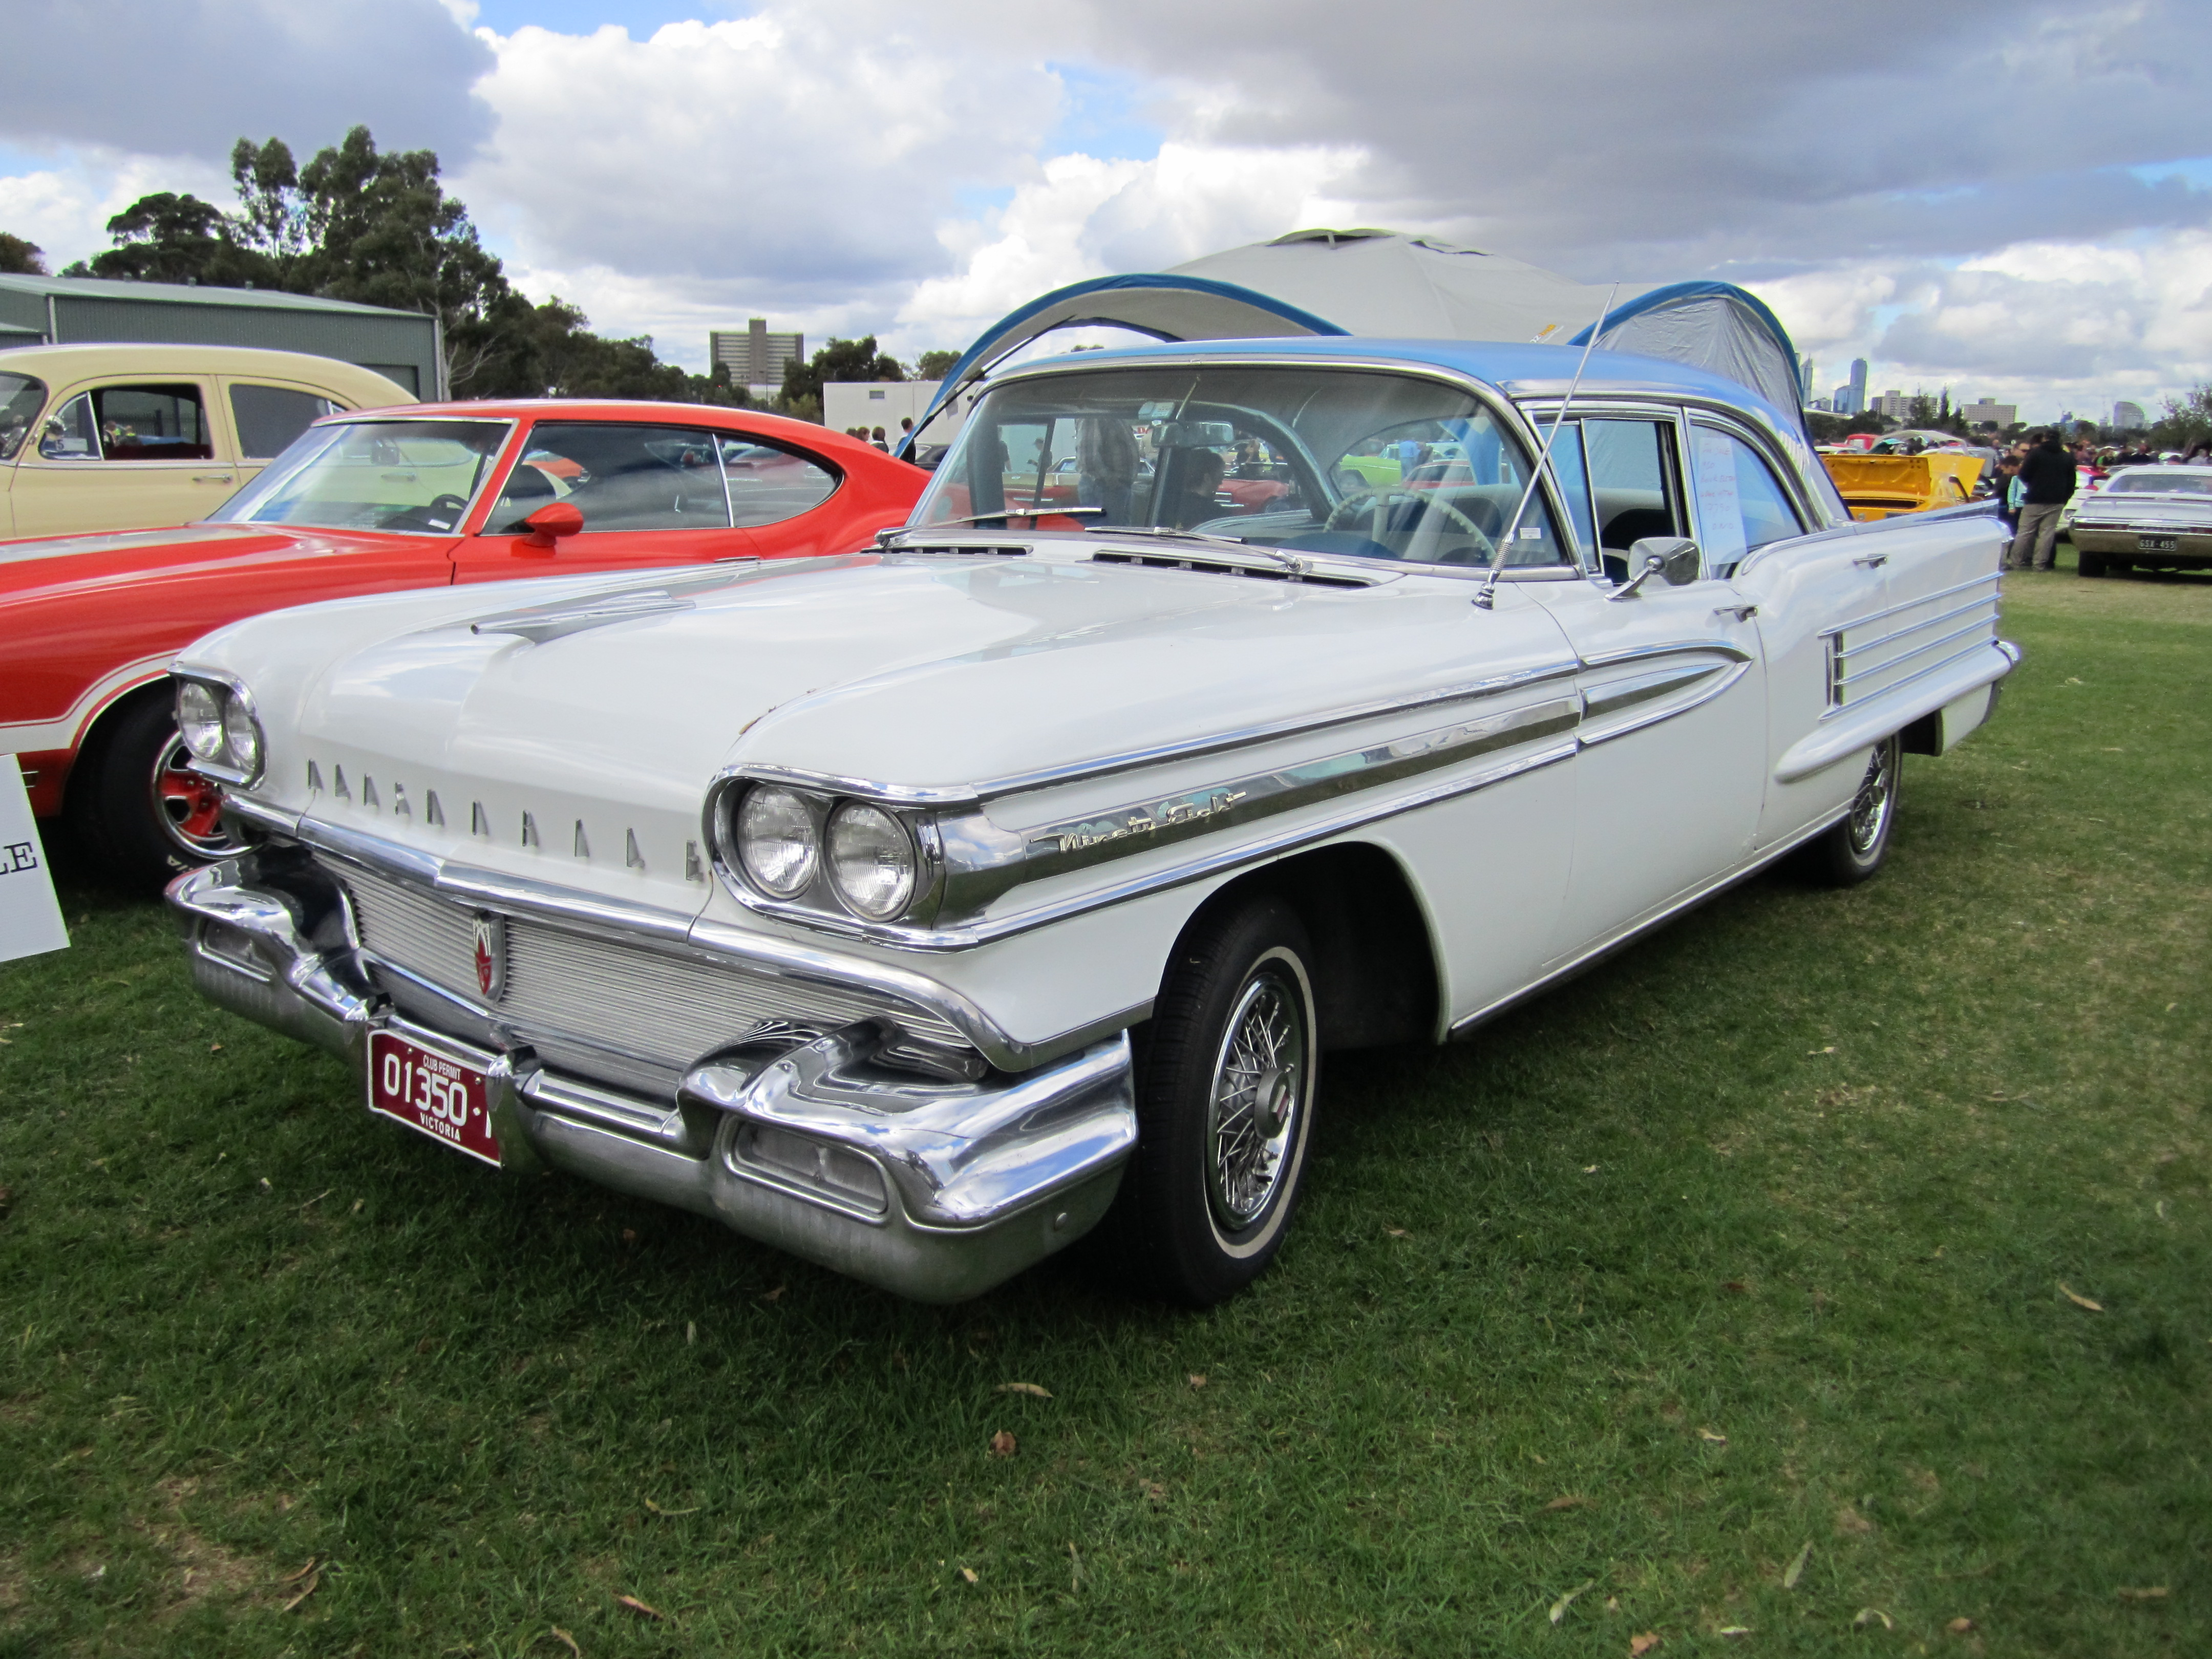 File:1958 Oldsmobile 98 Sedan.jpg - Wikipedia, the free encyclopedia